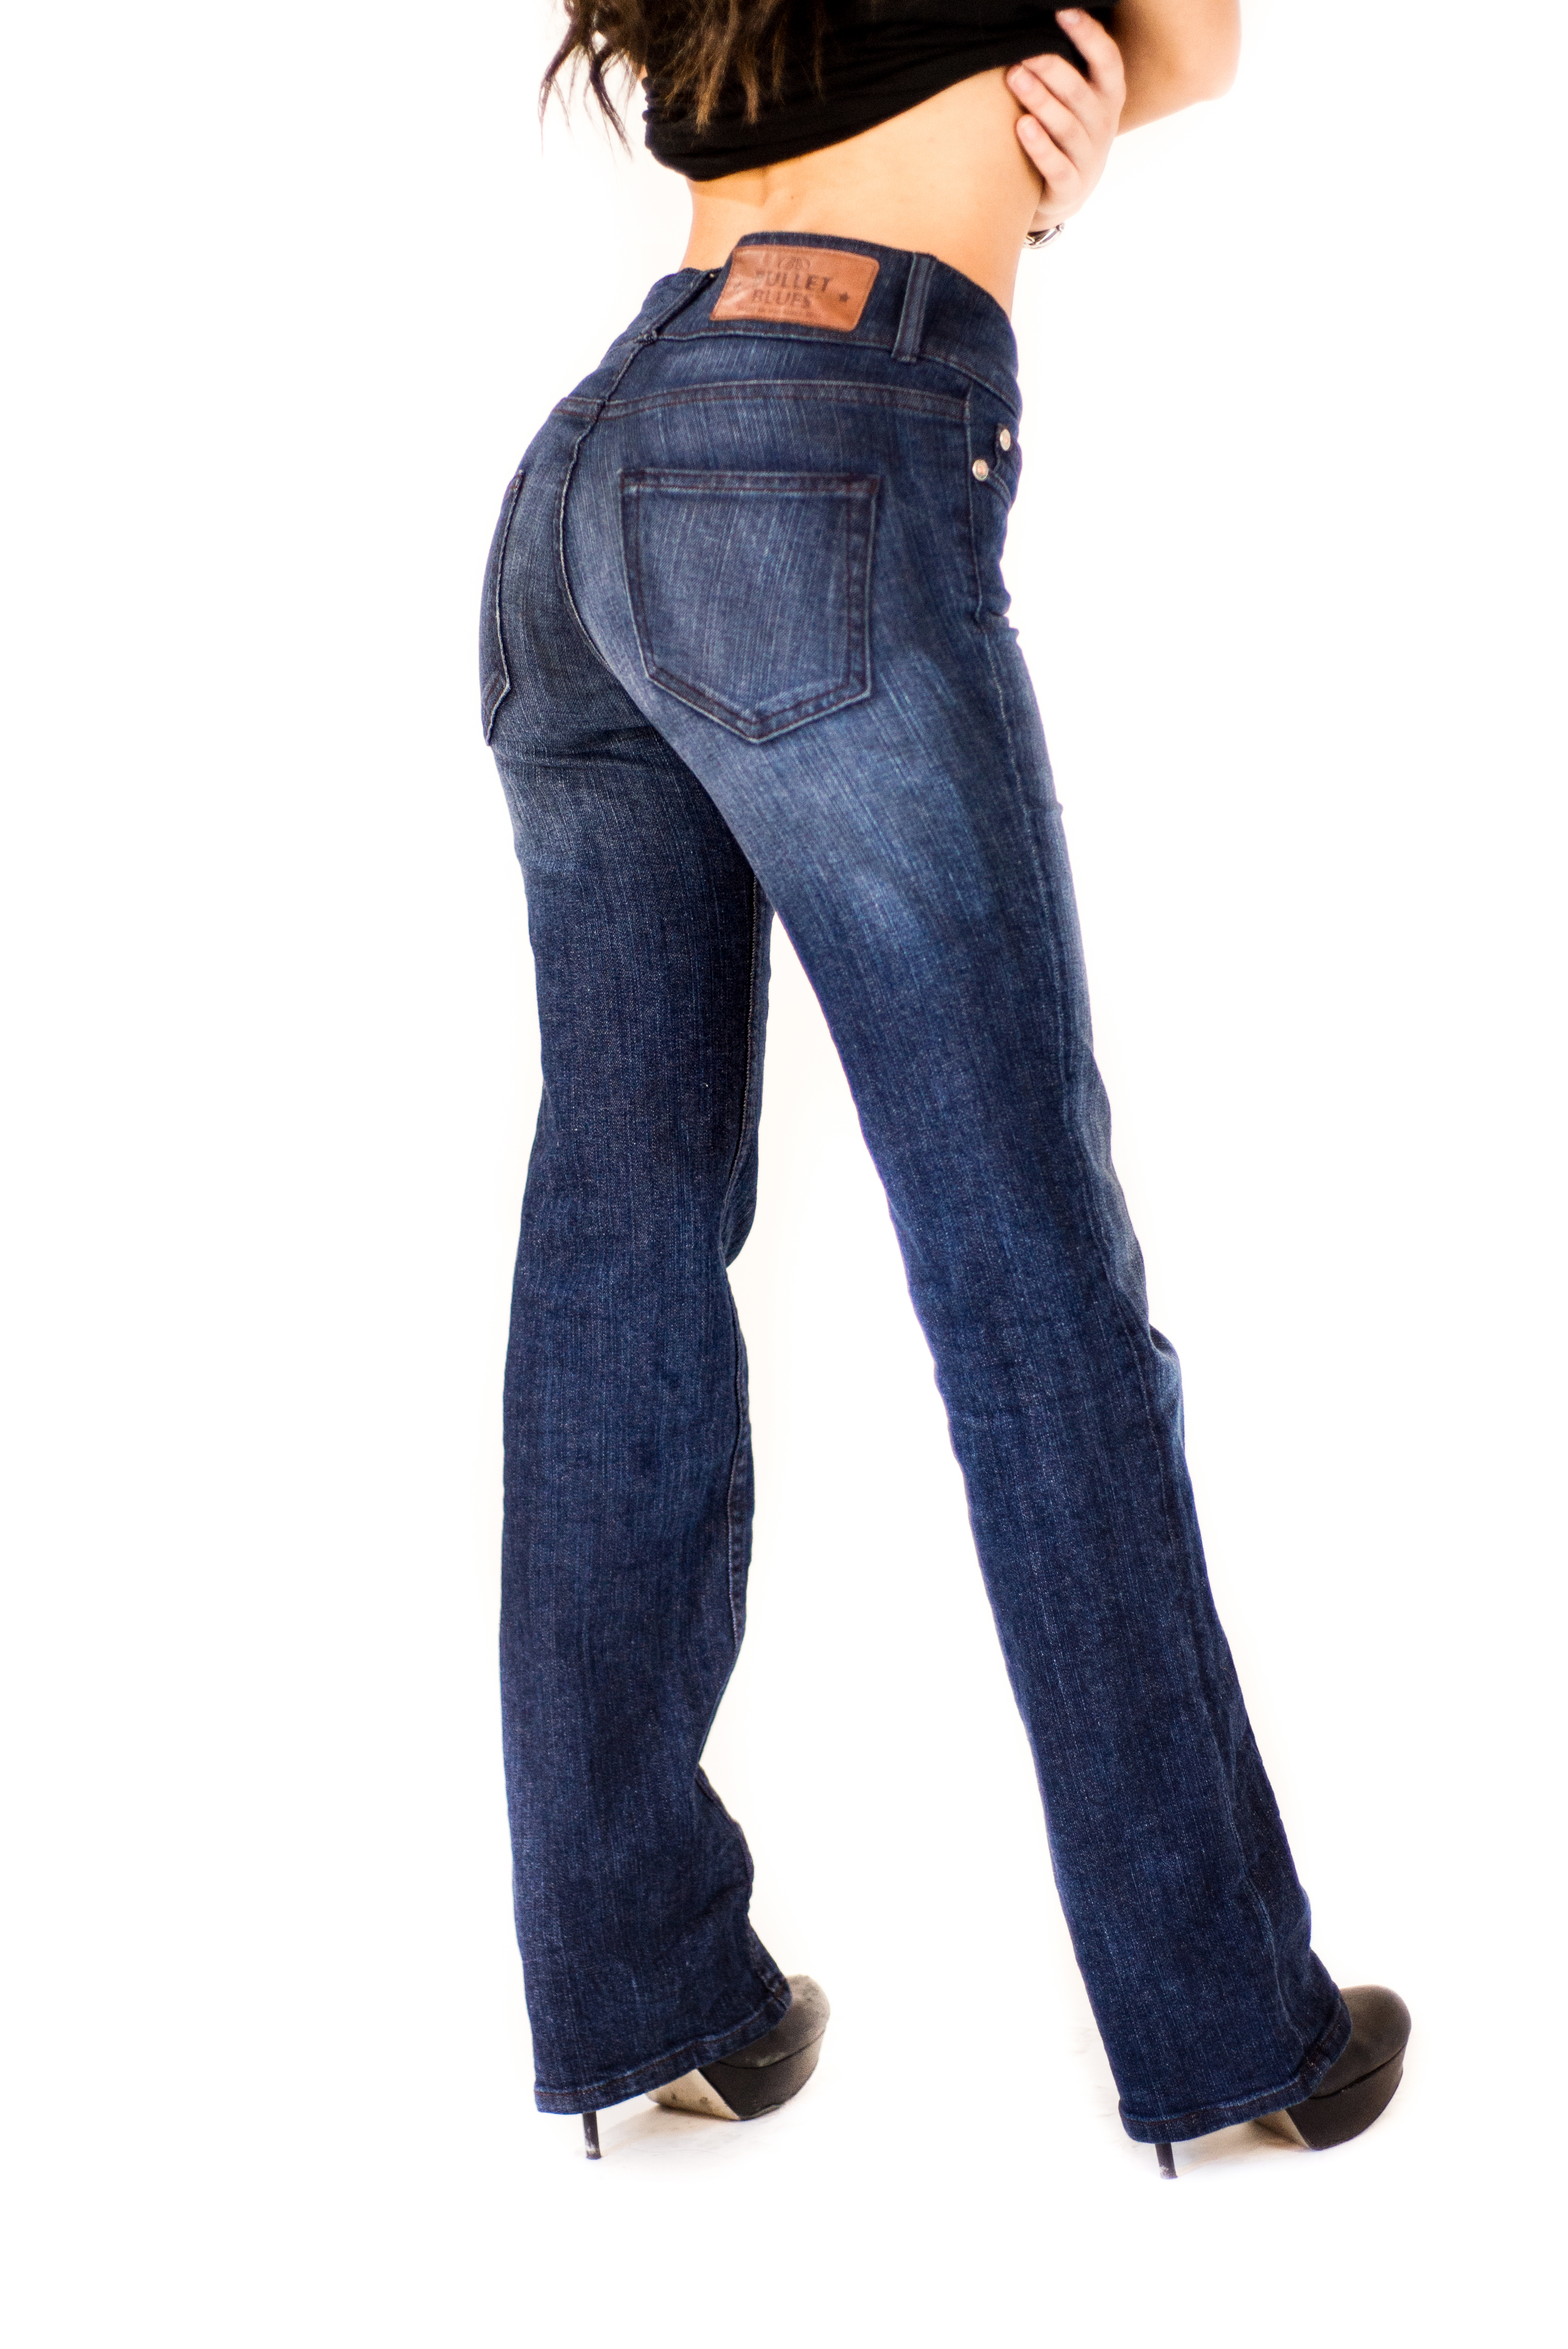 American Mother - Bullet Blues Elegant Boot Cut Jeans with High Waist - Made in USA